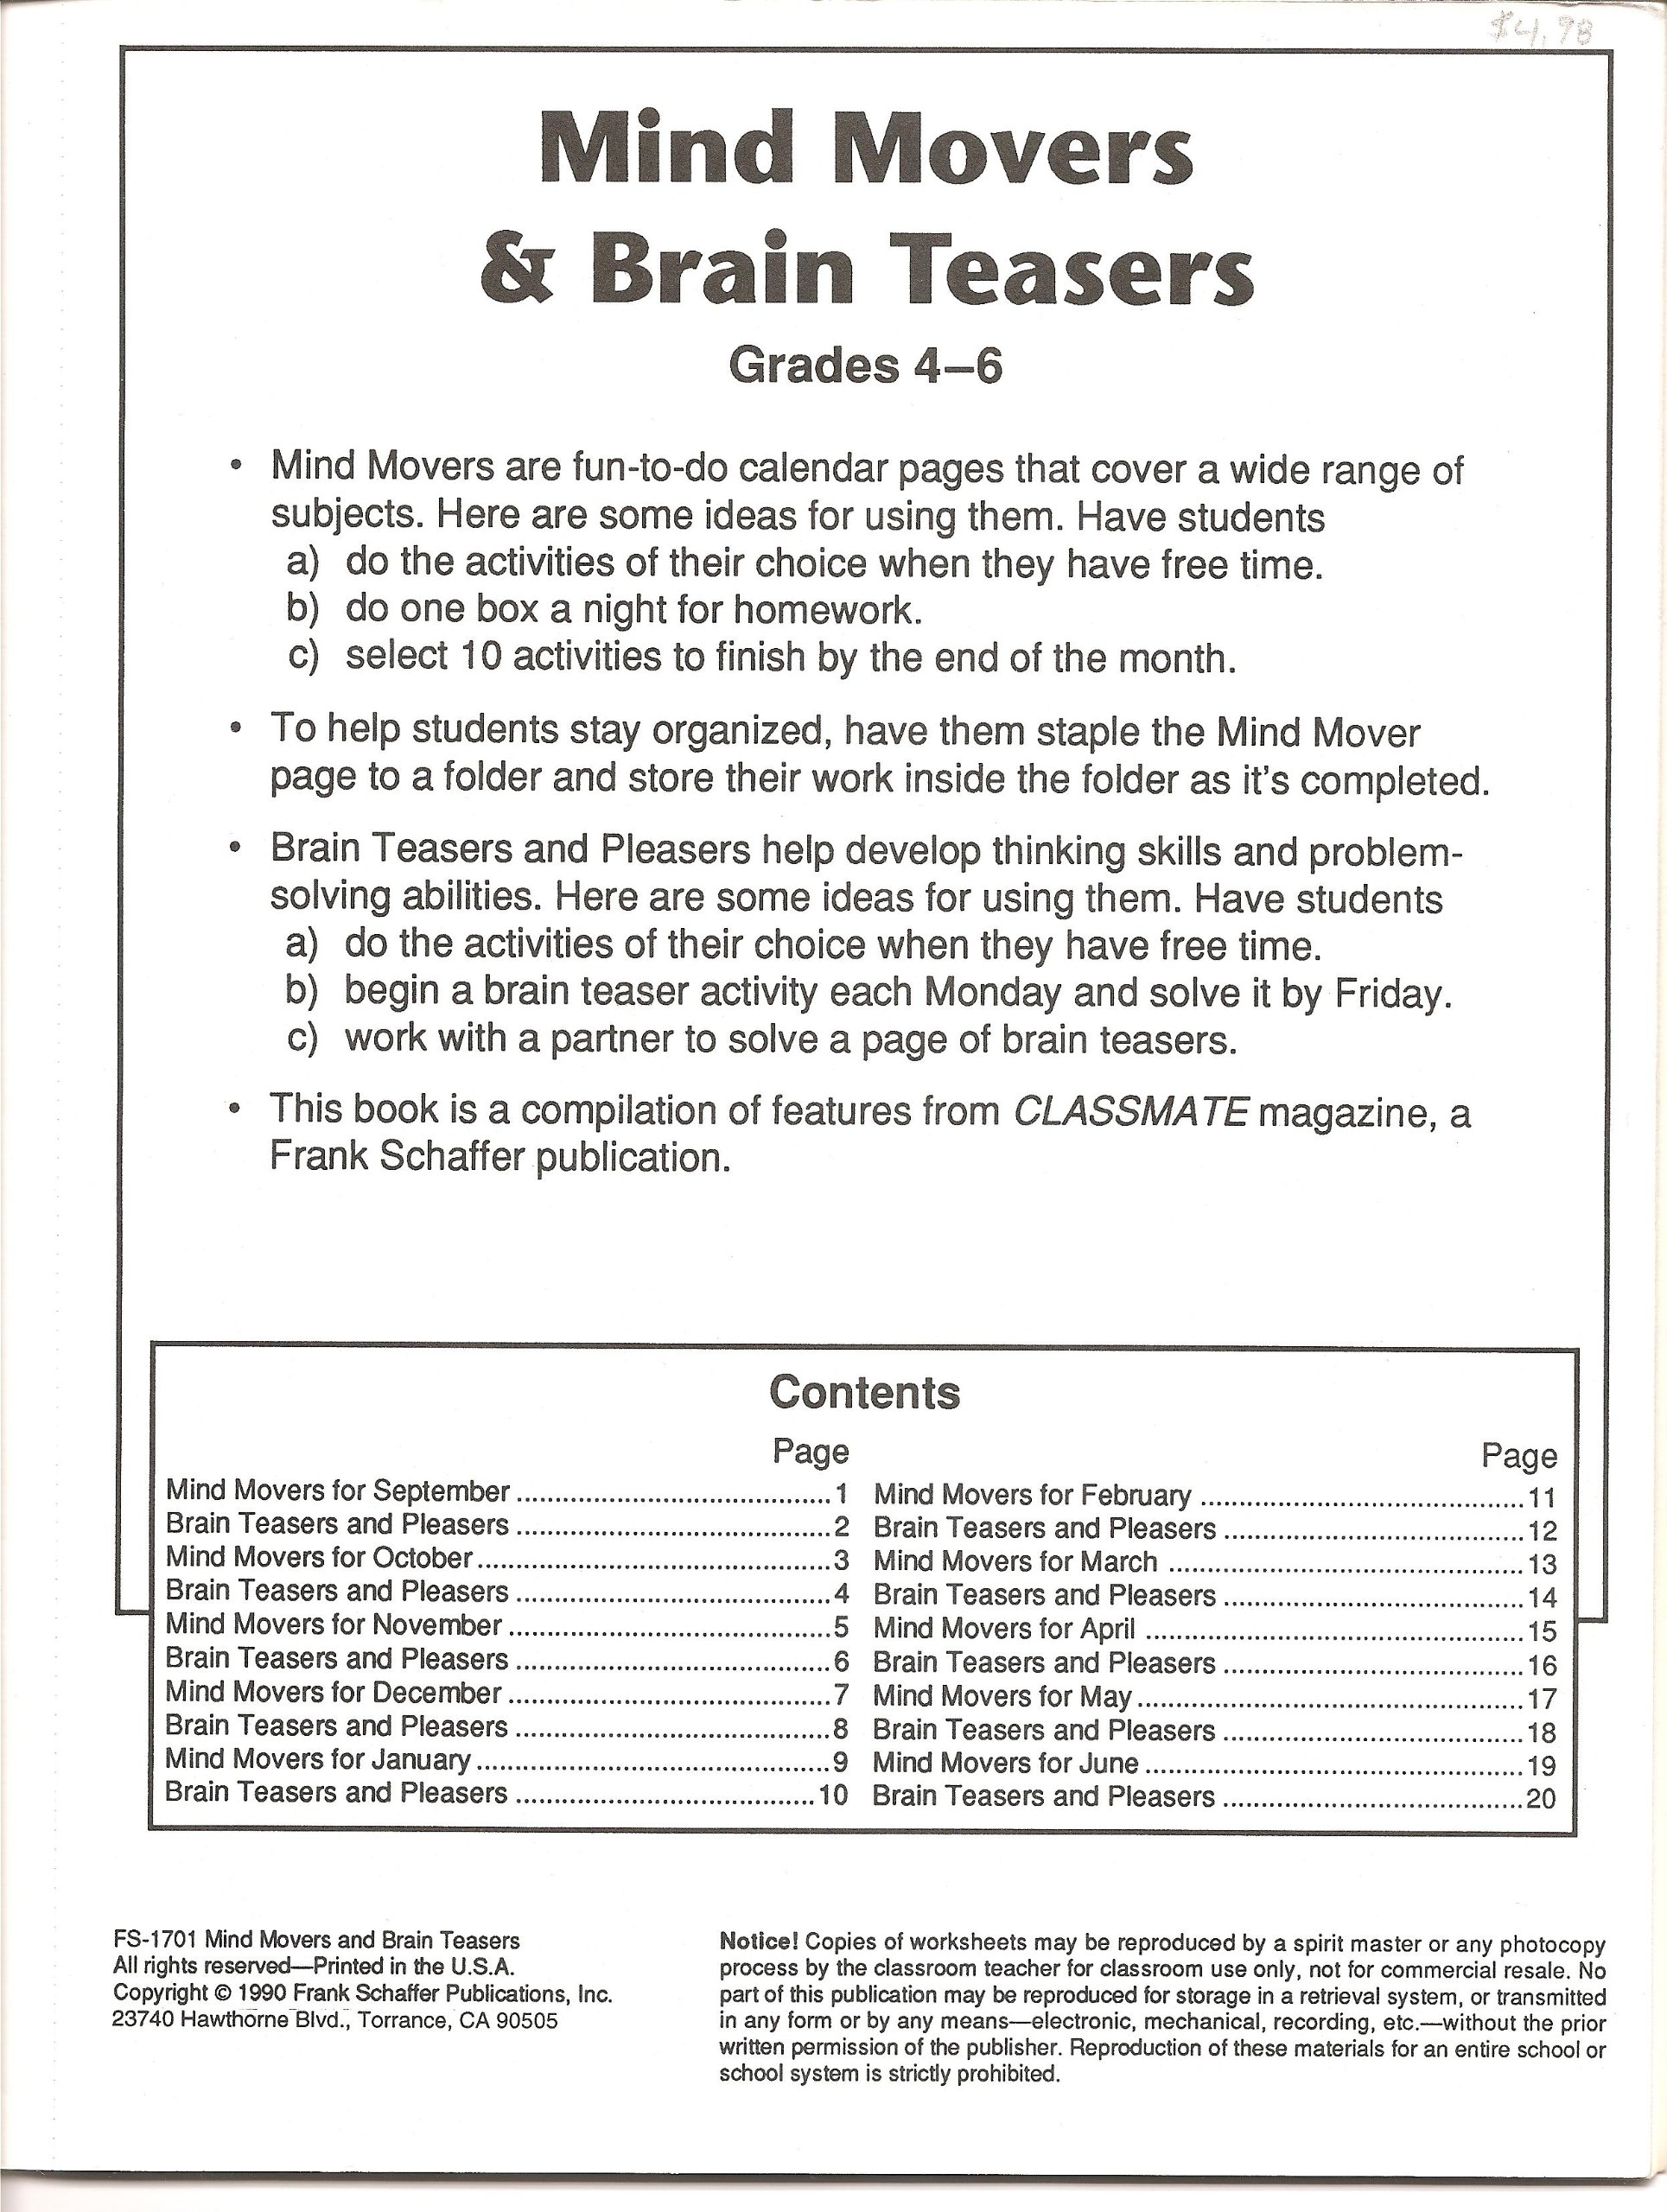 worksheet Frank Schaffer Publications Worksheets mind movers and brain teasers for grades 4 6 blackline reproducibles frank schaffer staff amazon com books